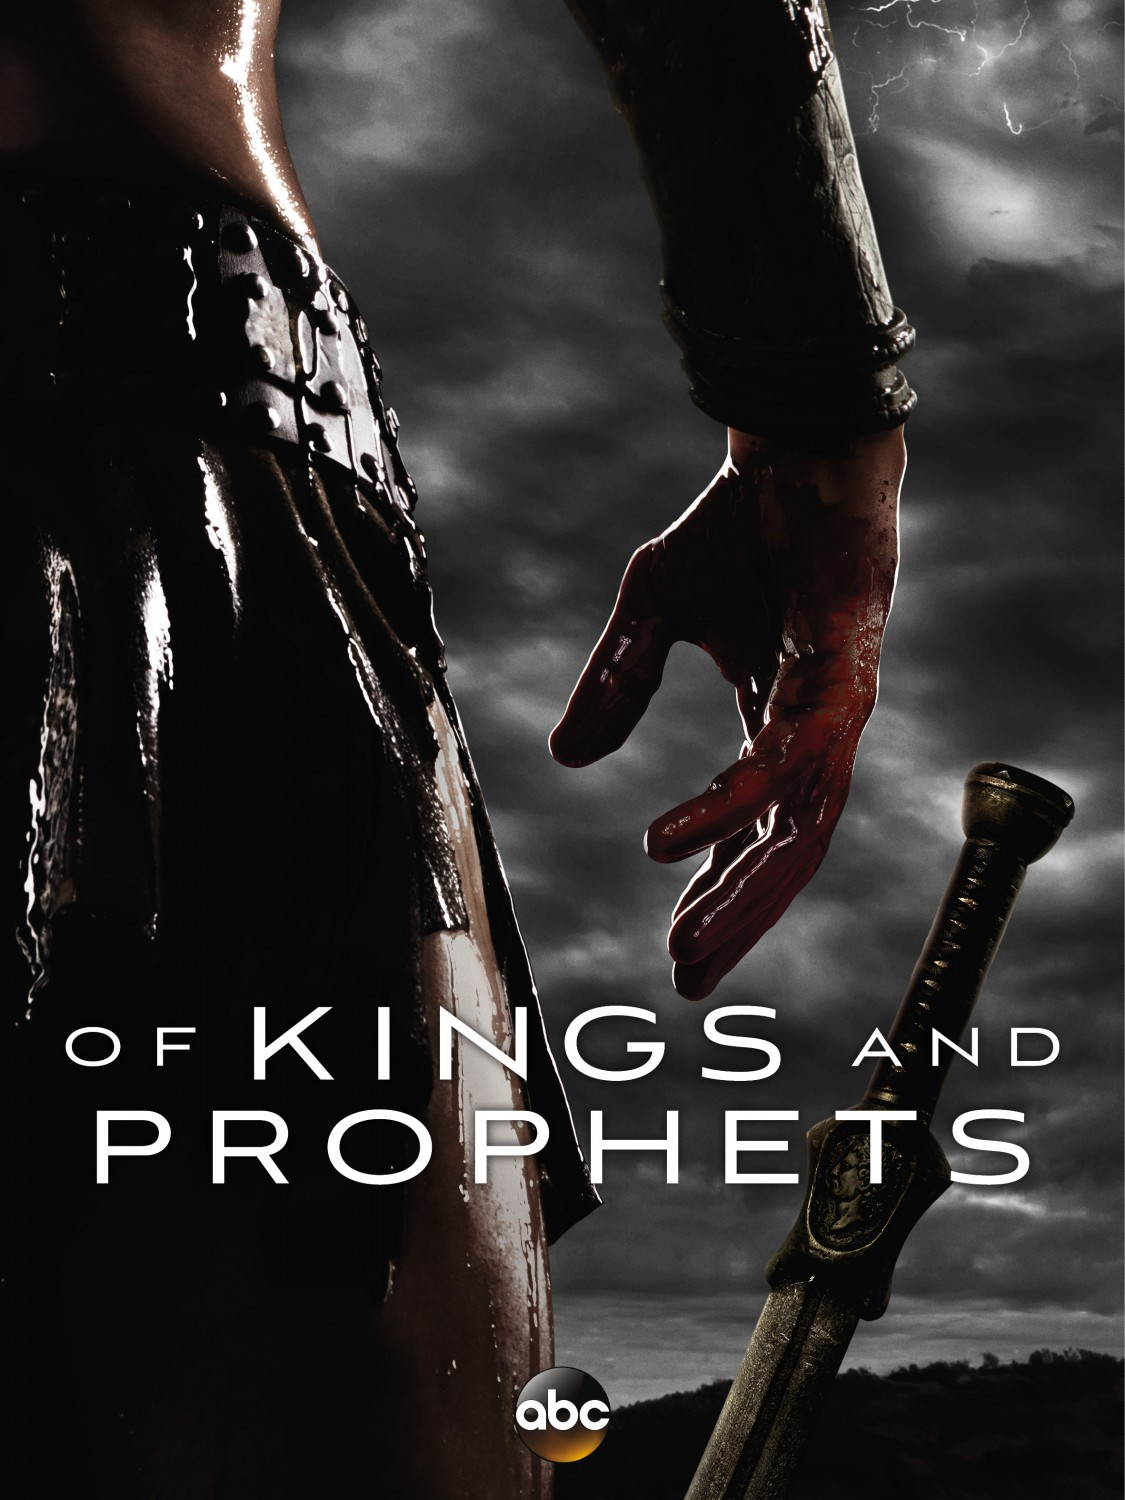 Of Kings and Prophets saison 1 en vo / vostfr